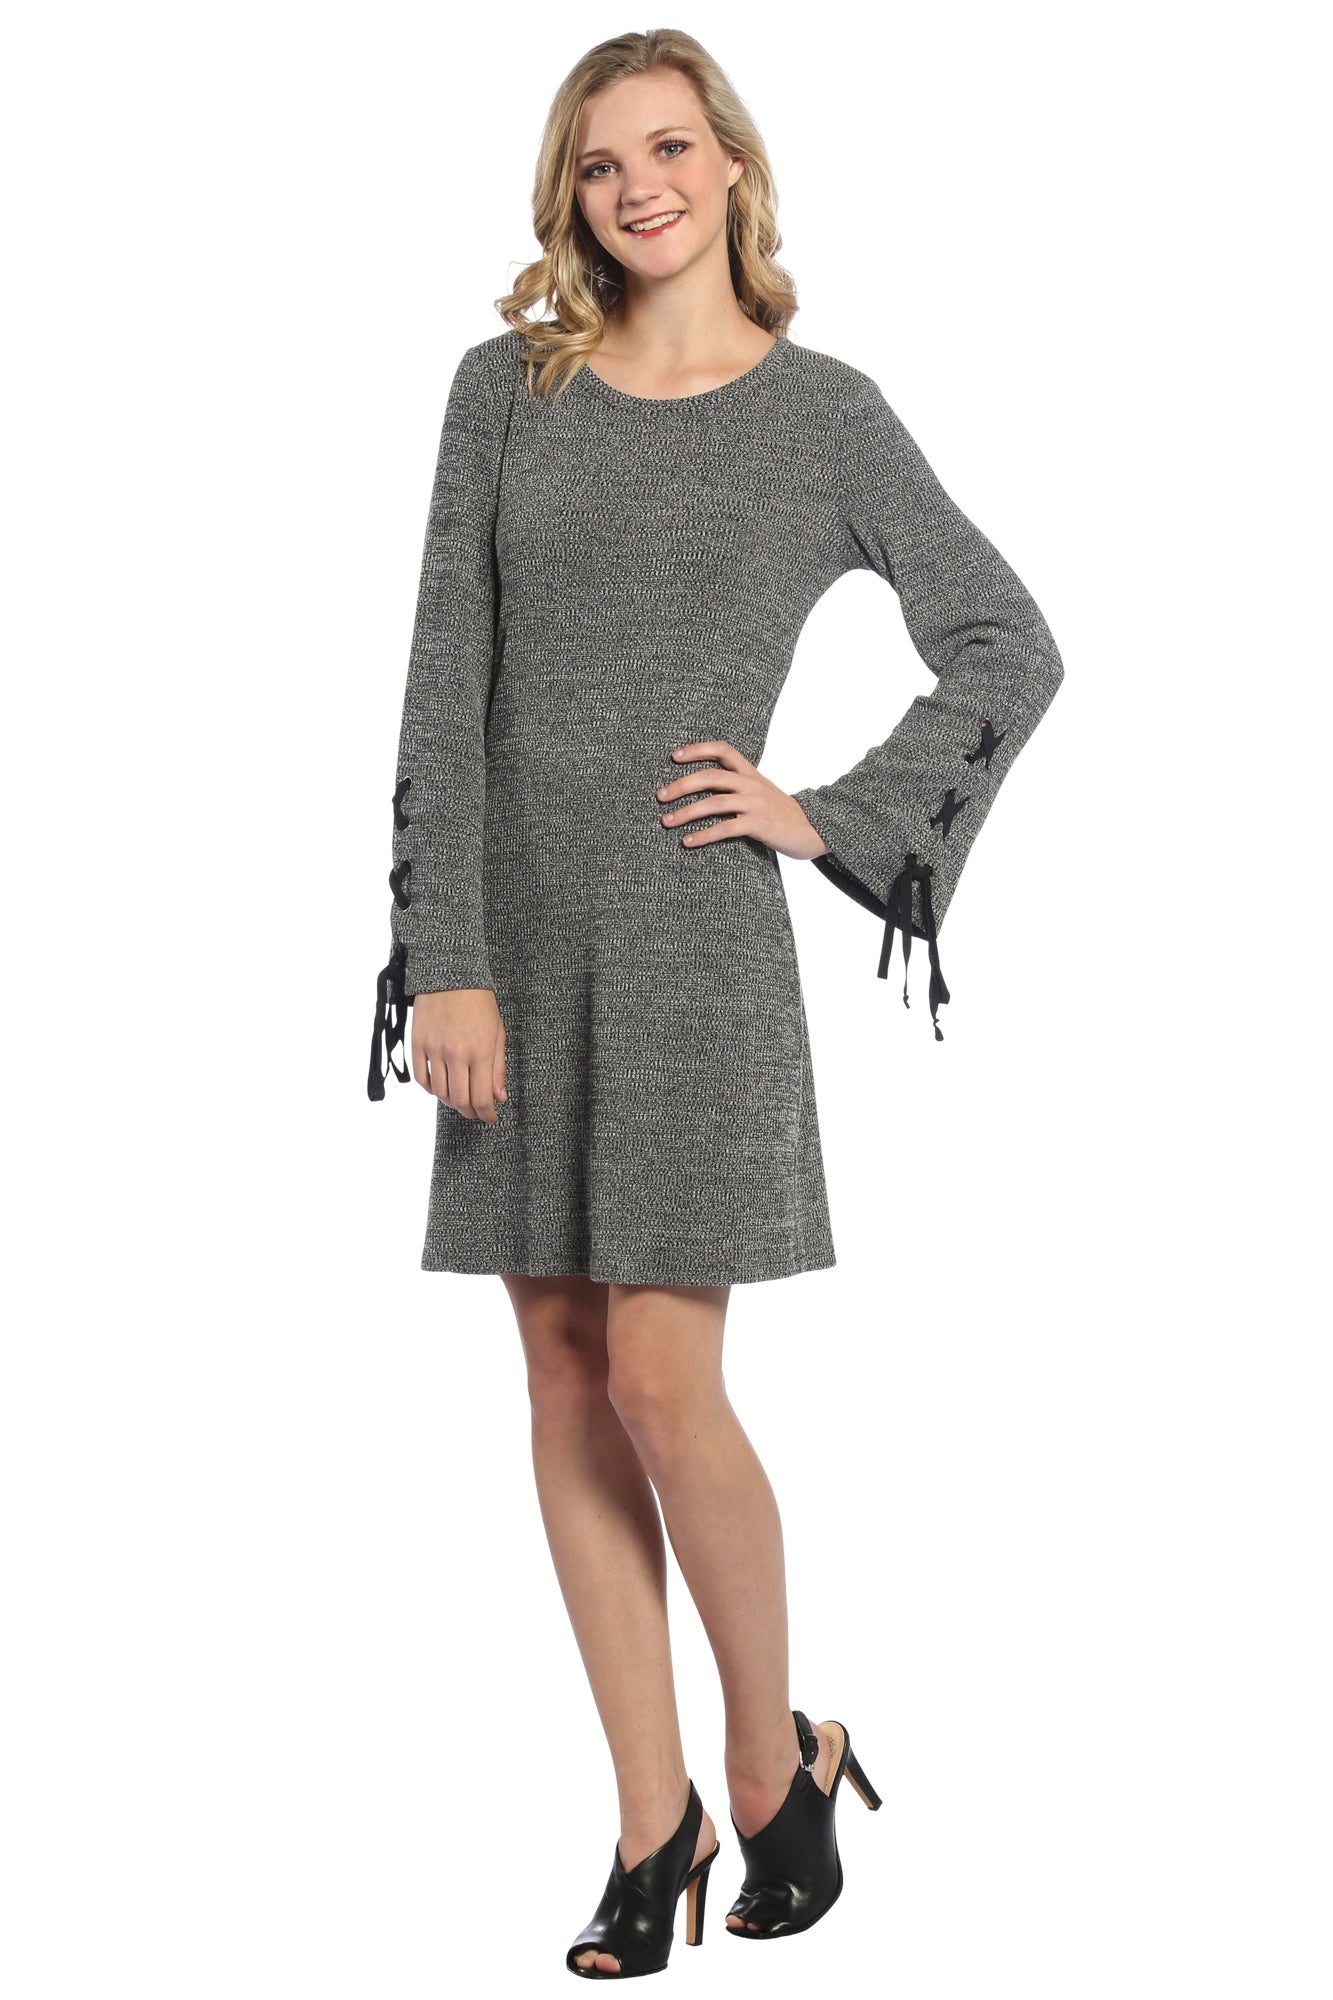 Laced Bell Sleeve Dress in Charcoal